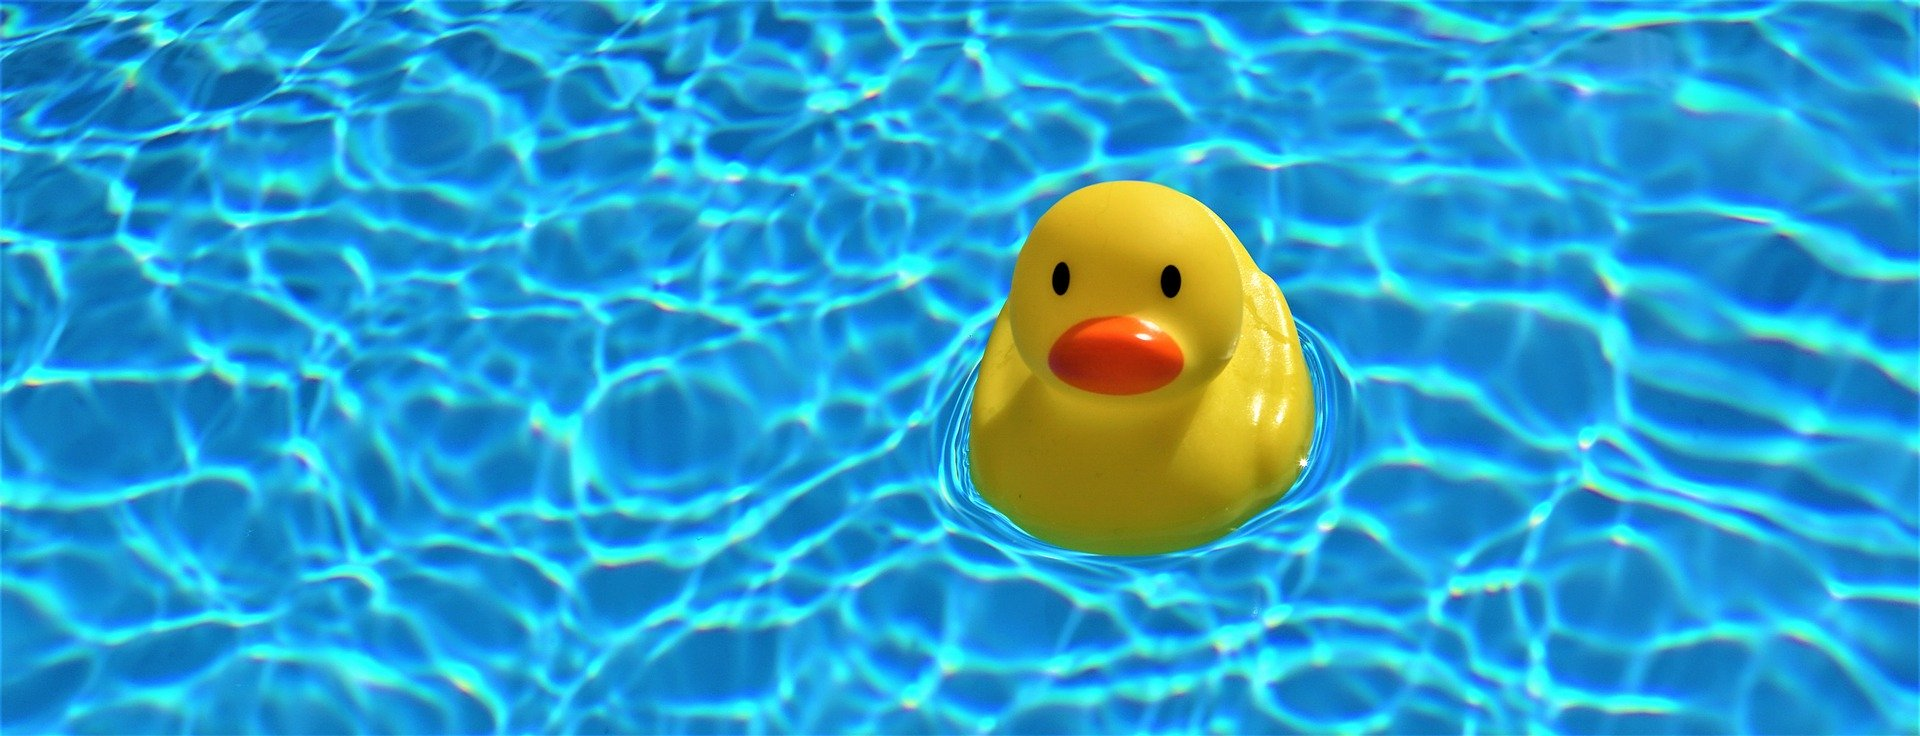 Ente in Pool